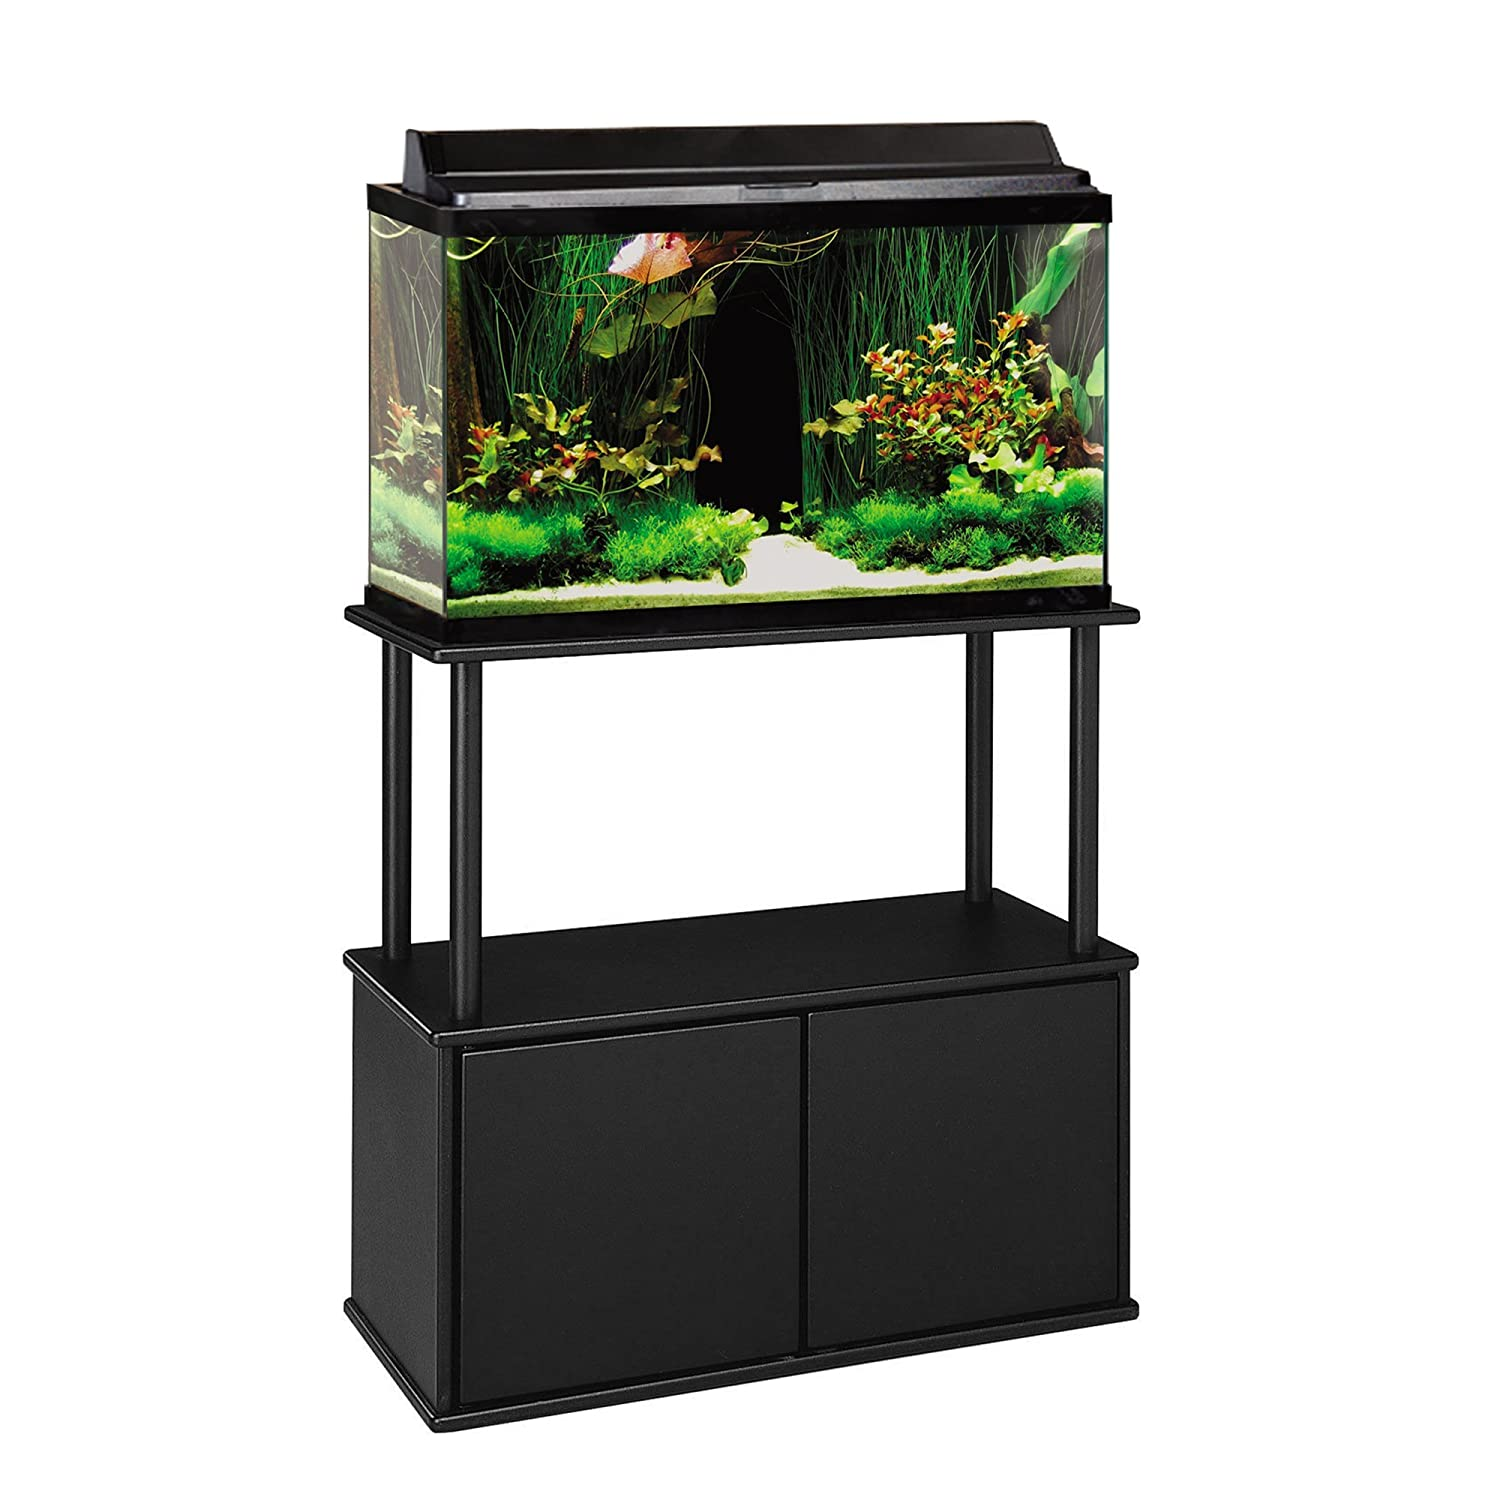 Amazon Aquatic Fundamentals Black Aquarium Stand with Storage